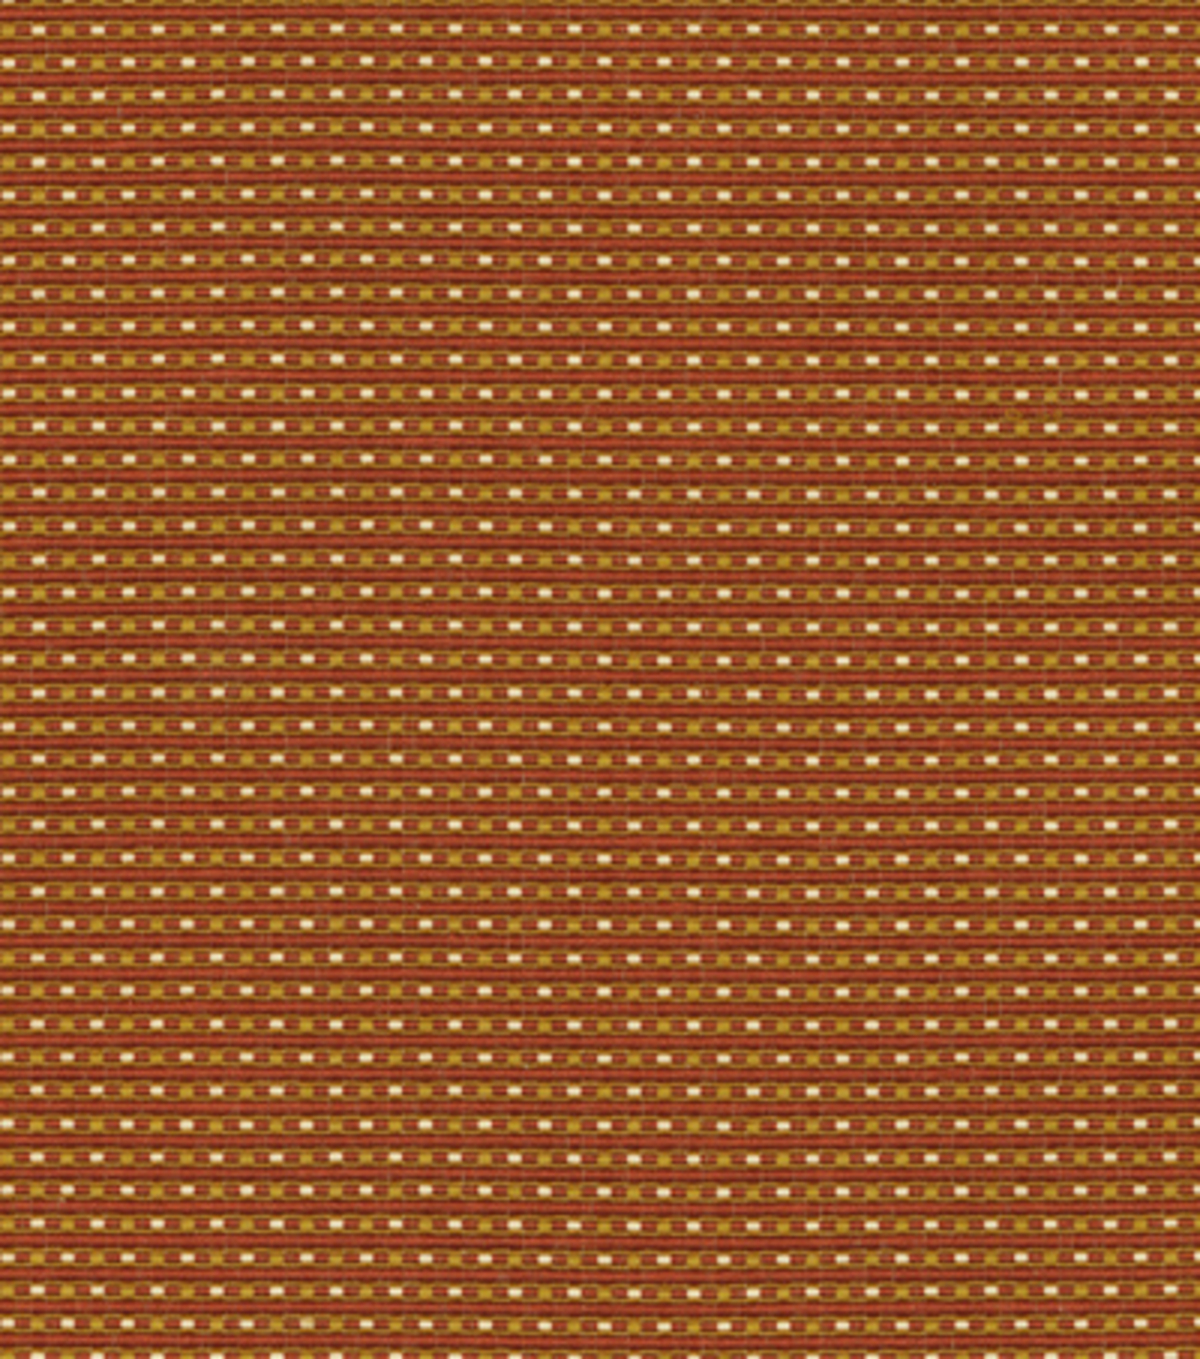 "Home Decor 8""x8"" Fabric Swatch-Upholstery Fabric-Waverly Dashing/Spice"